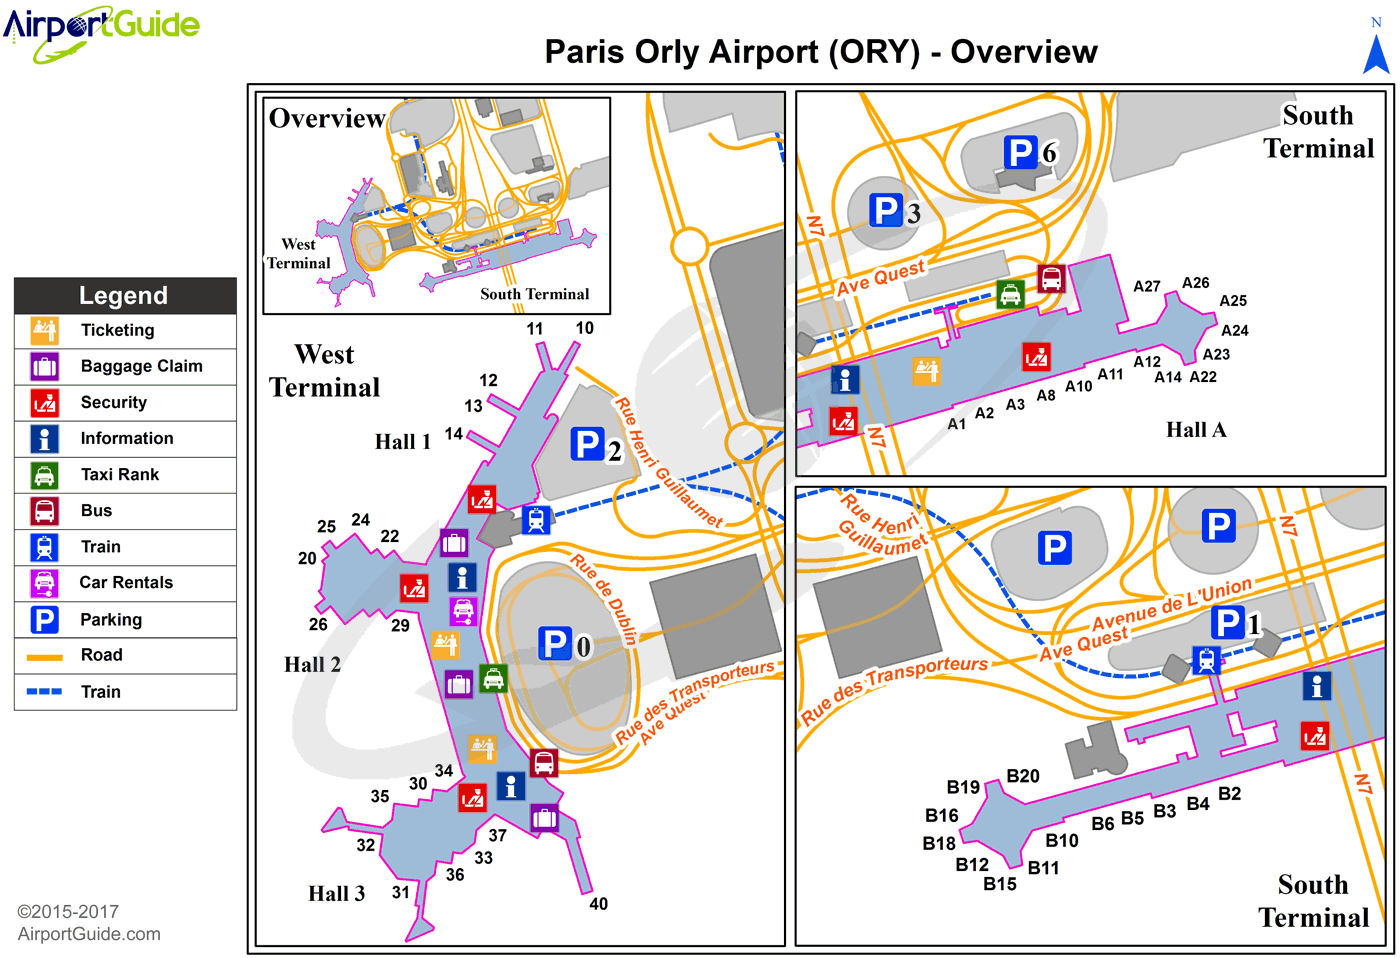 Paris - Paris-Orly (ORY) Airport Terminal Map - Overview